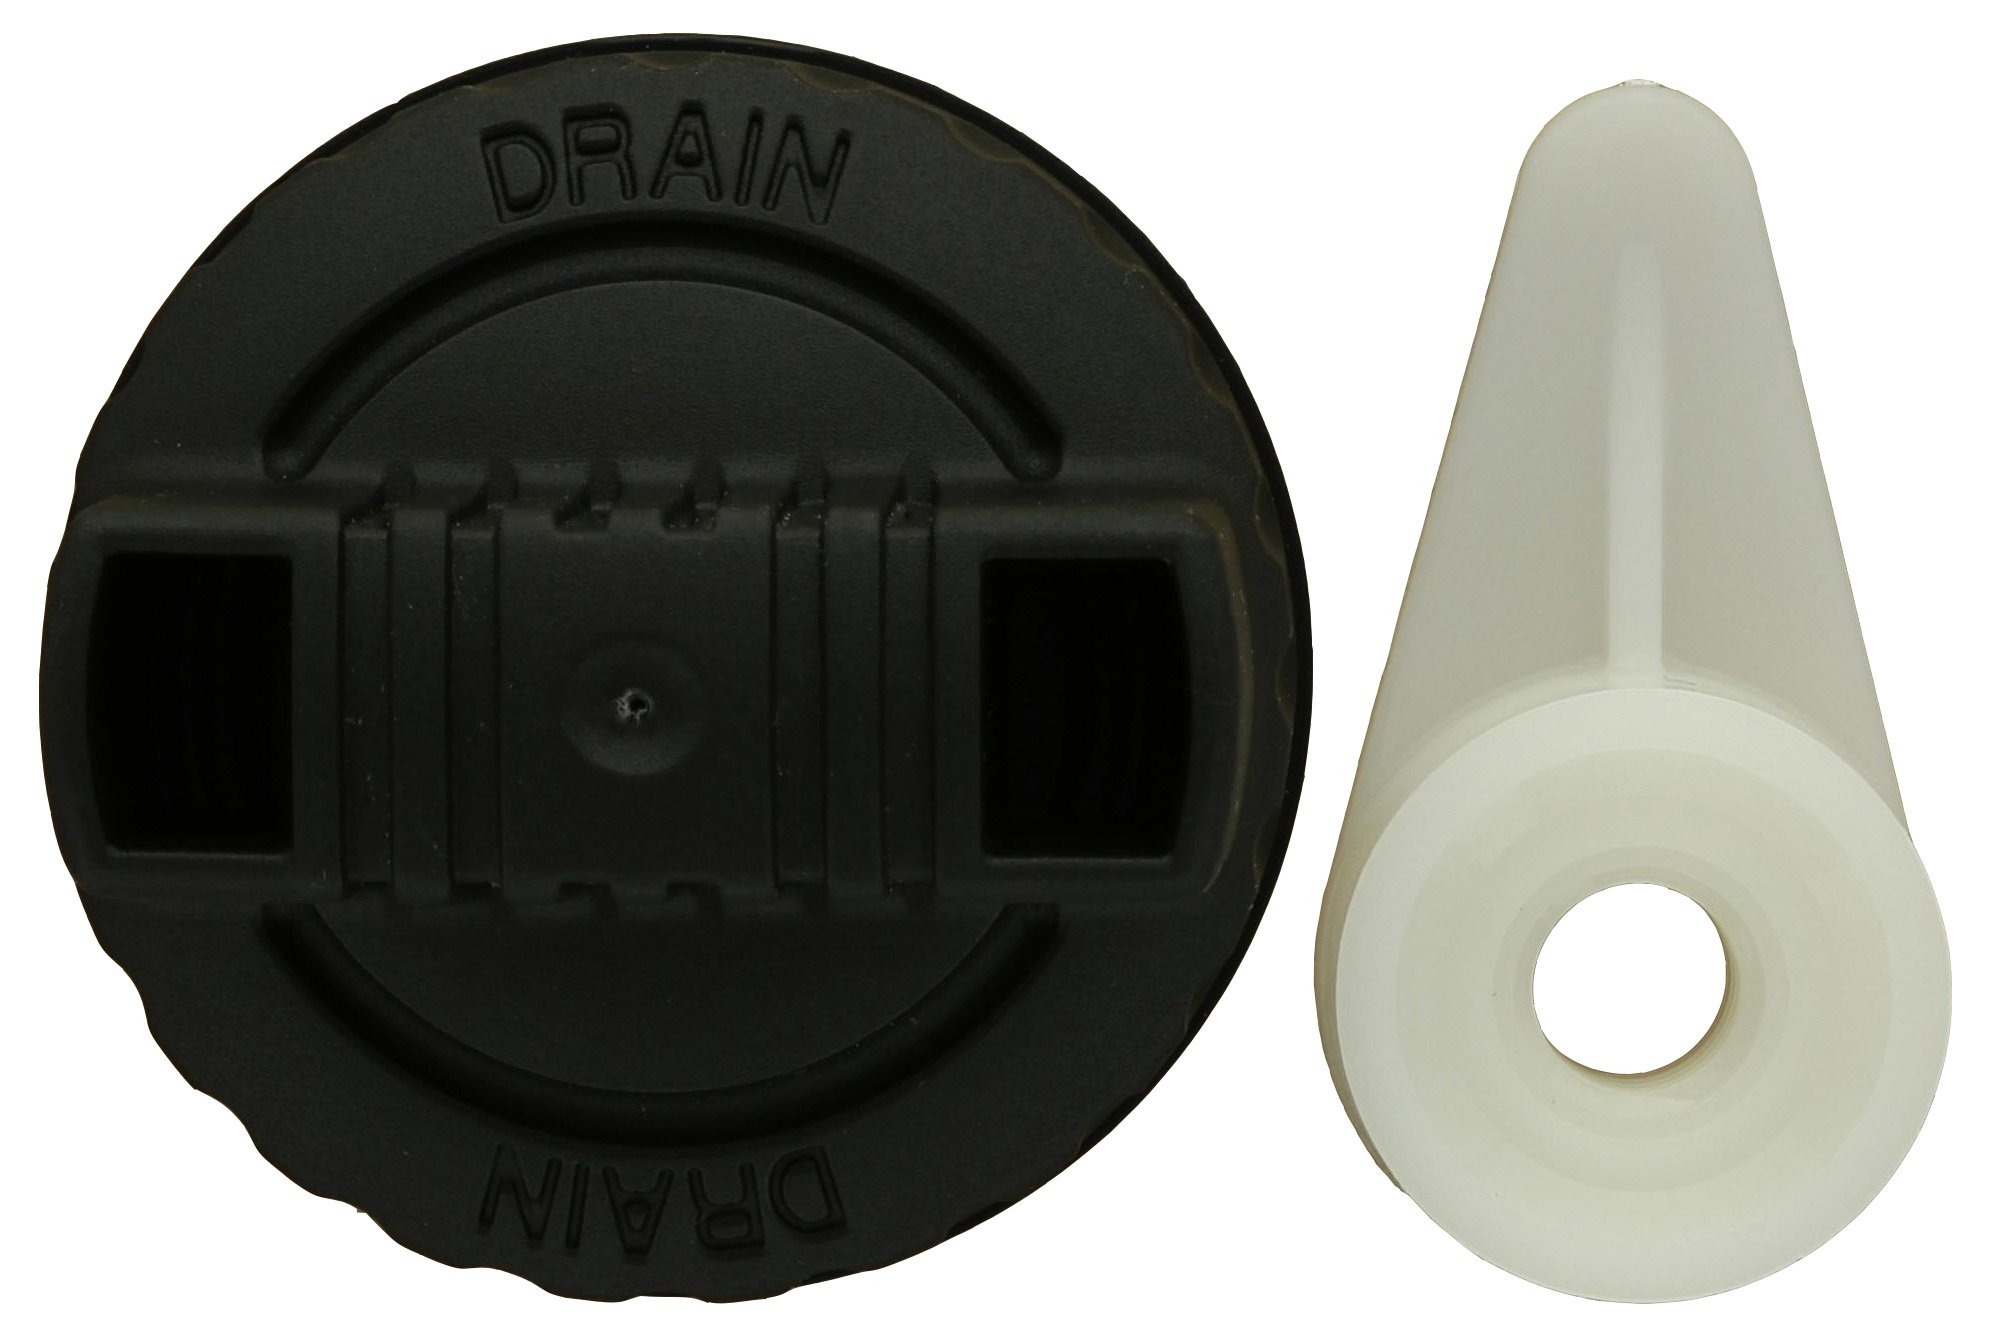 Ridgid VT2561 Genuine OEM Plastic Filter Nut and Drain Cap Kit for Pre-2010 Ridgid Wet / Dry Vacuums